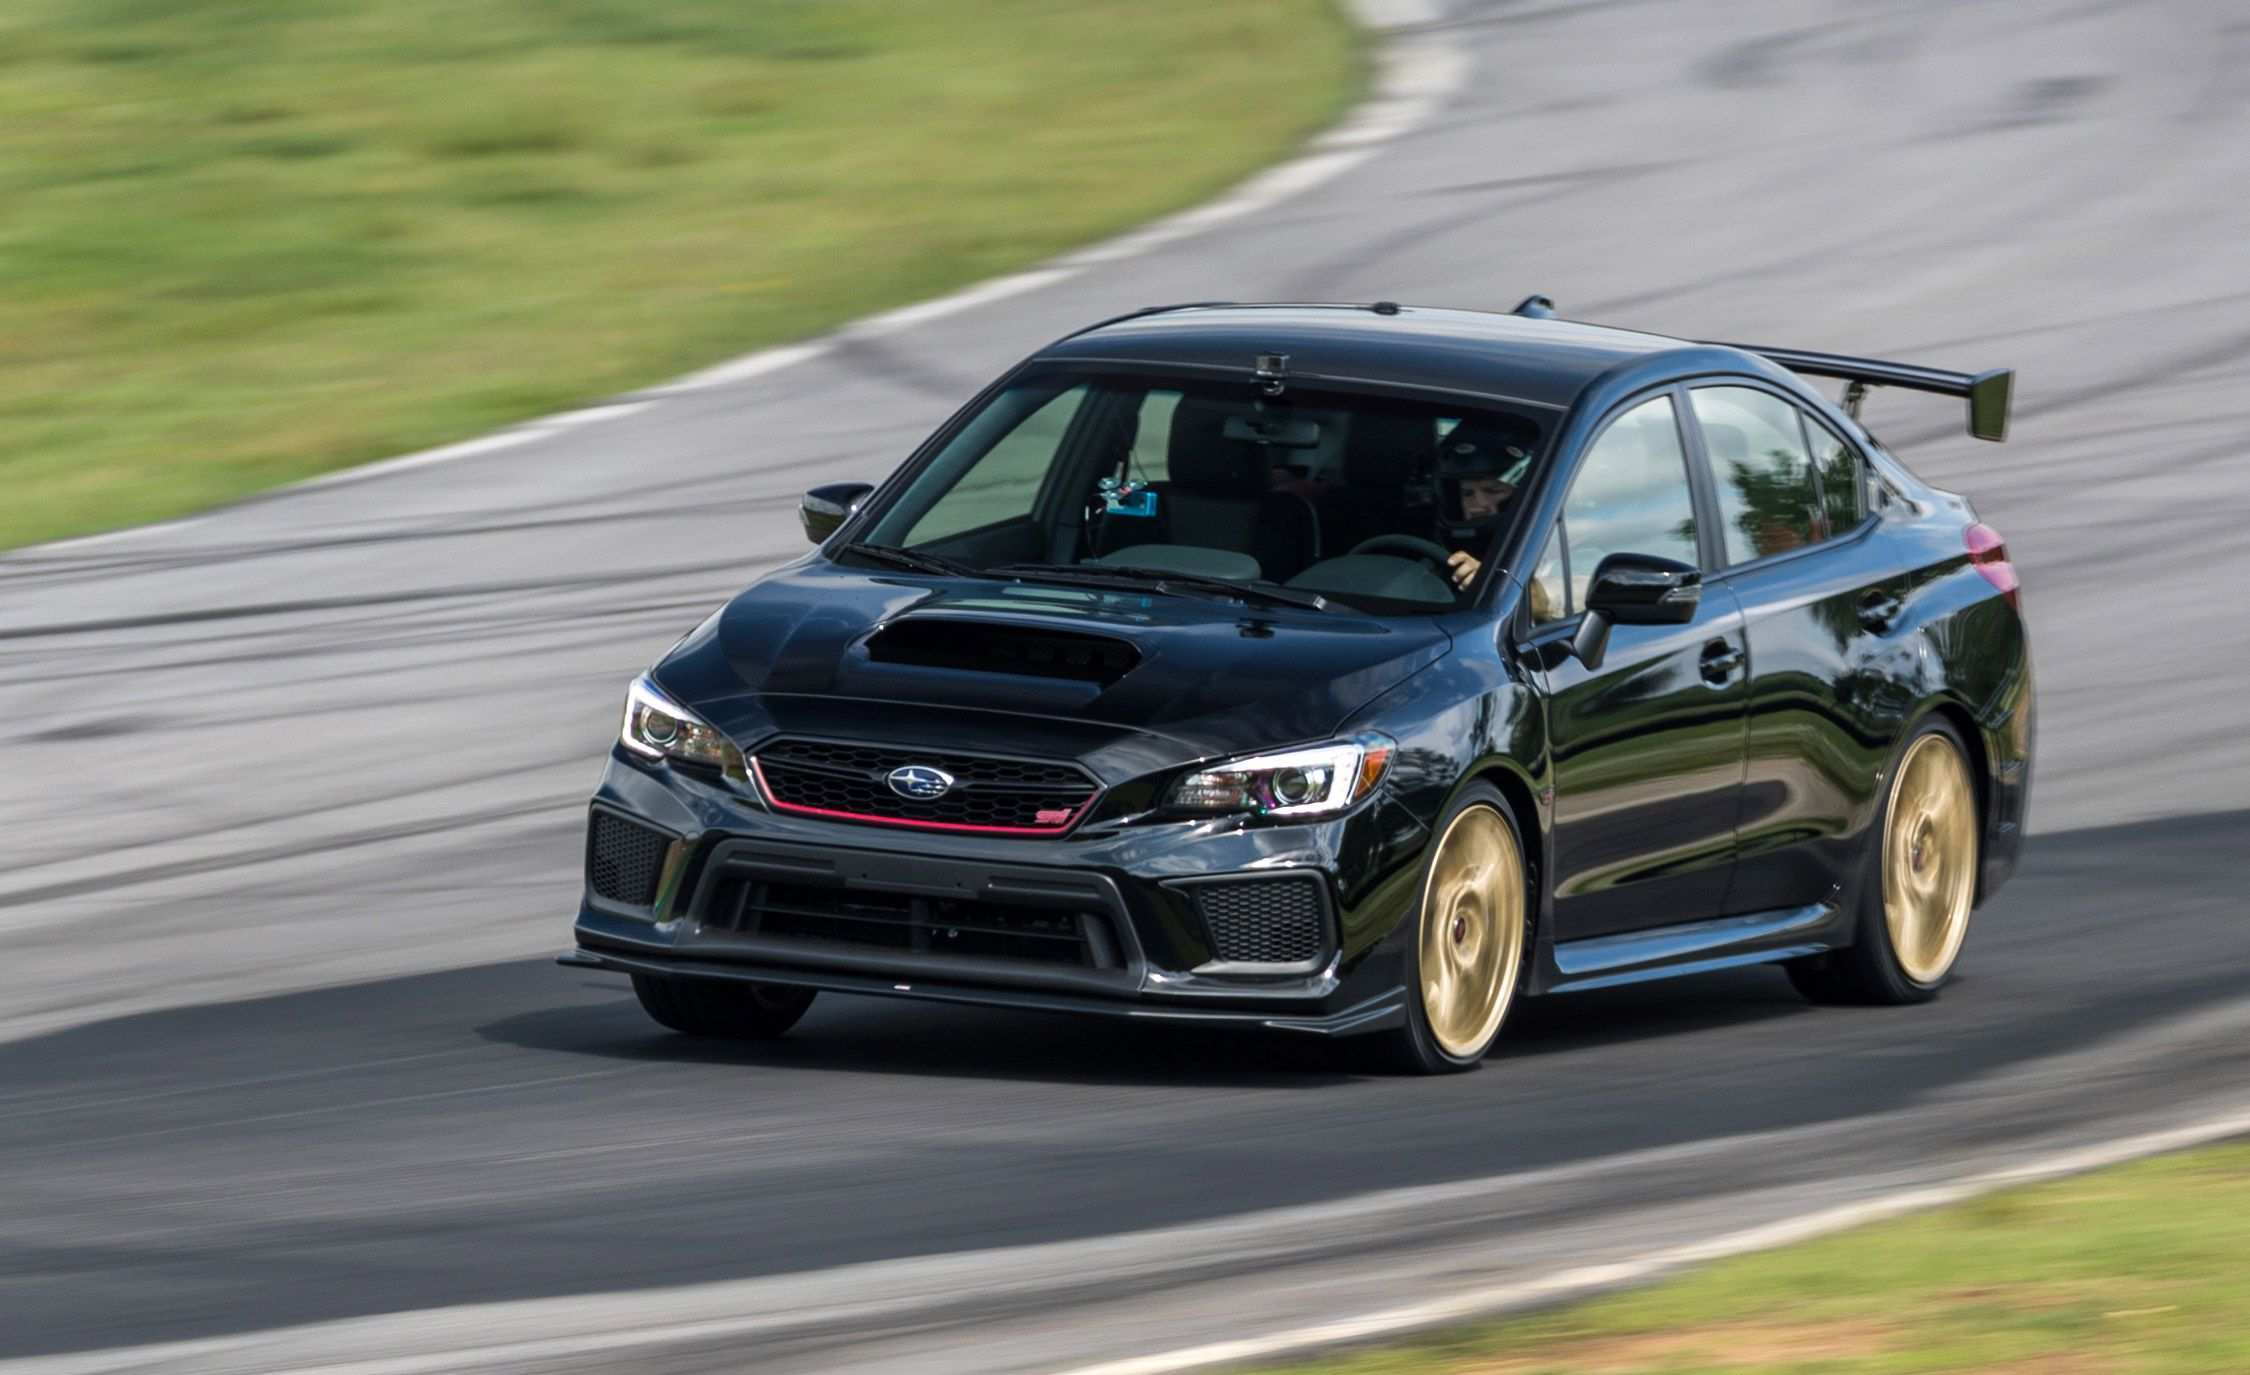 55 Gallery of 2019 Subaru Sti Review New Concept with 2019 Subaru Sti Review